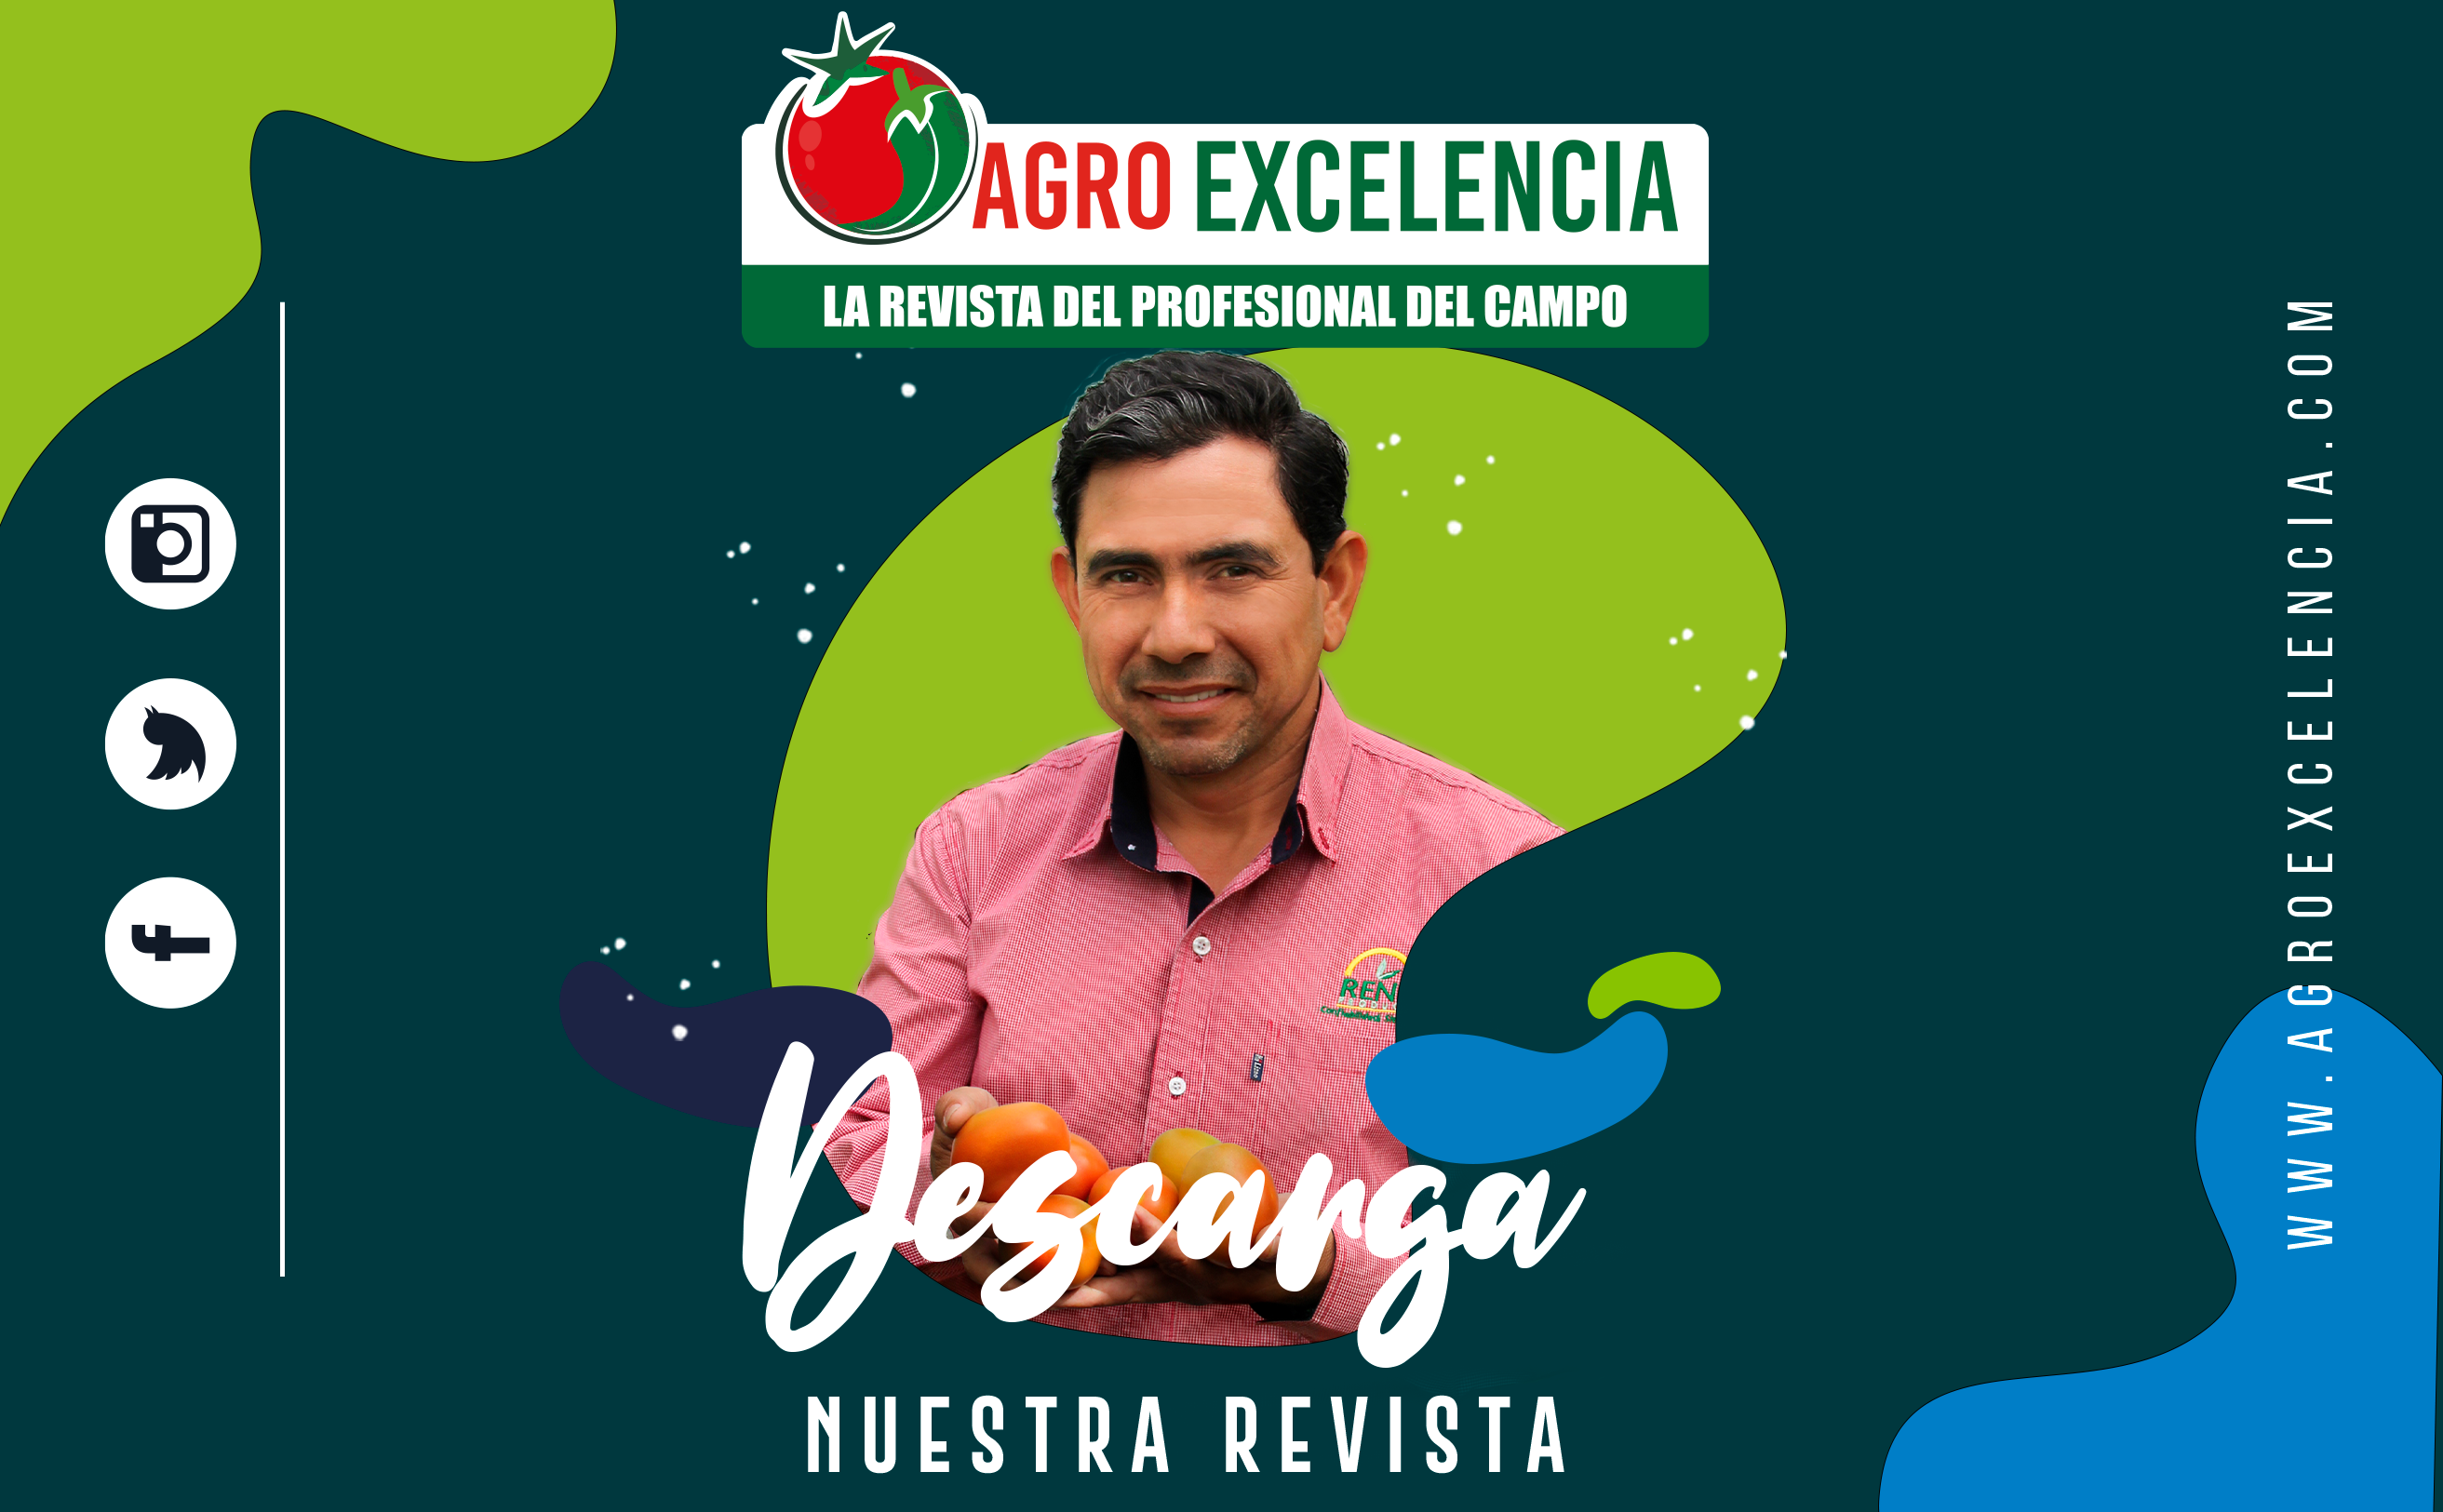 https://agroexcelencia.com/wp-content/uploads/2020/08/1-2.png